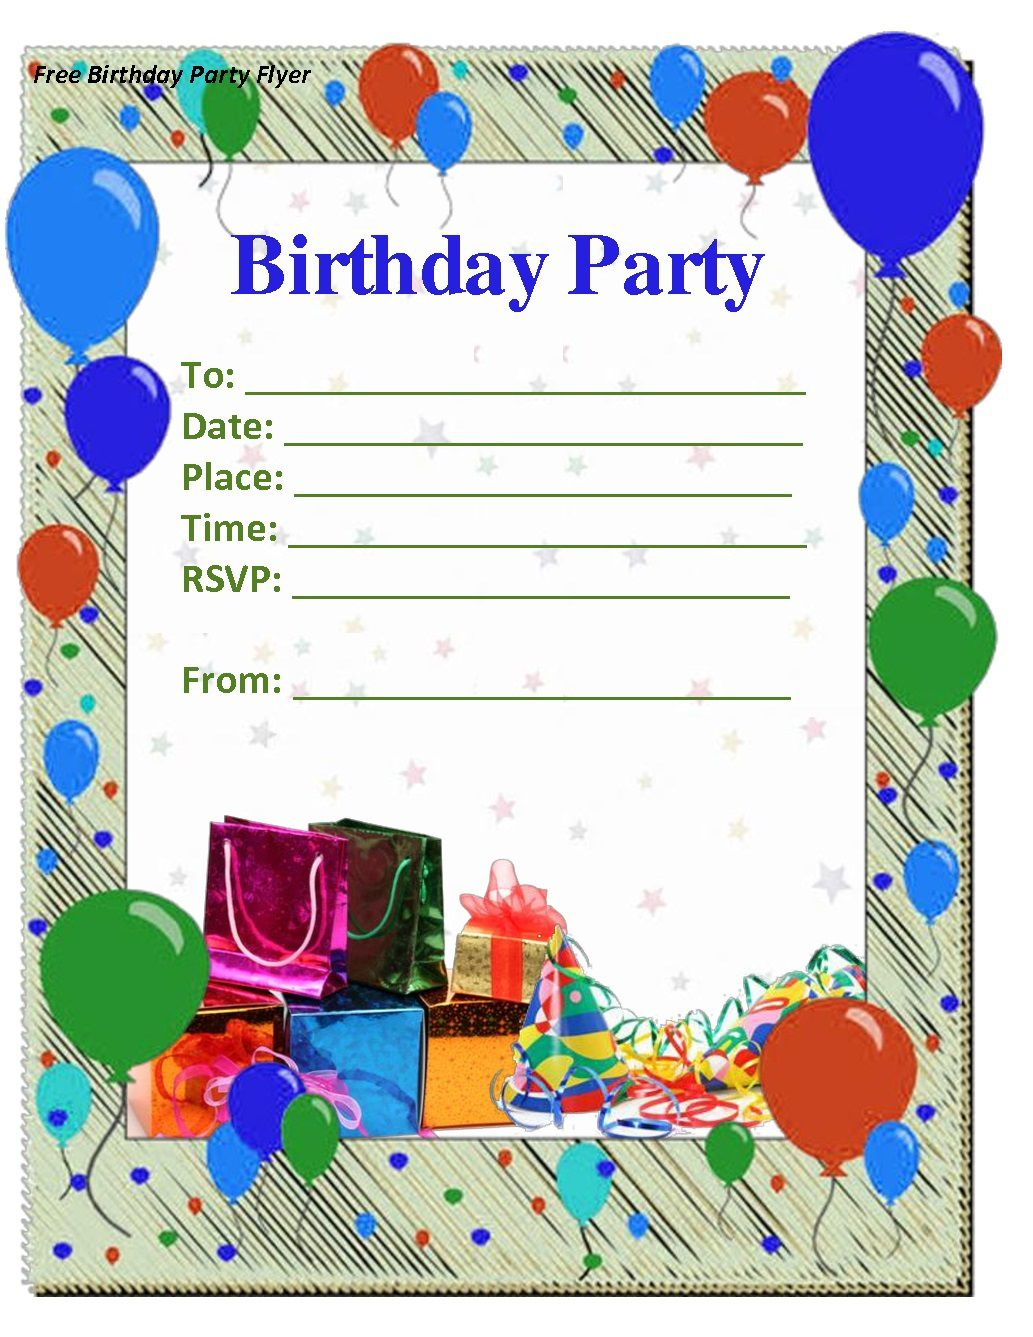 009 Staggering Free Birthday Party Invitation Template For Word Idea Full